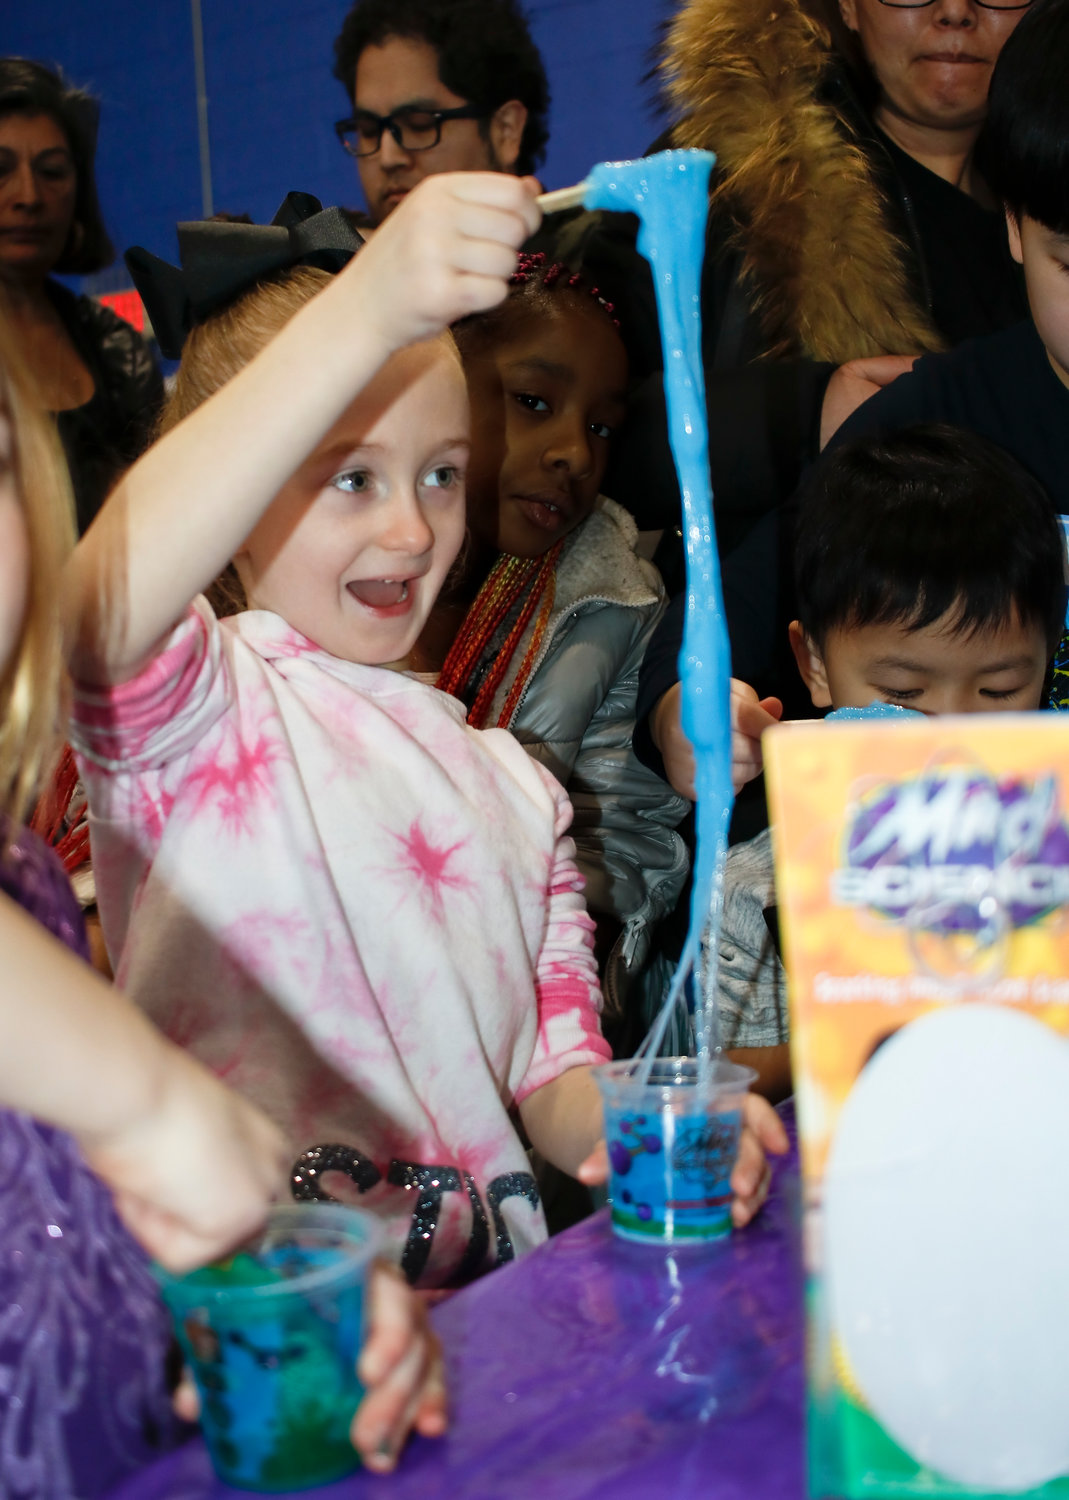 One of the most popular booths at the event was the Mad Science slime-making bar. Ava Pagnotta, 6, of Oceanside, tested how far she could stretch her slime.